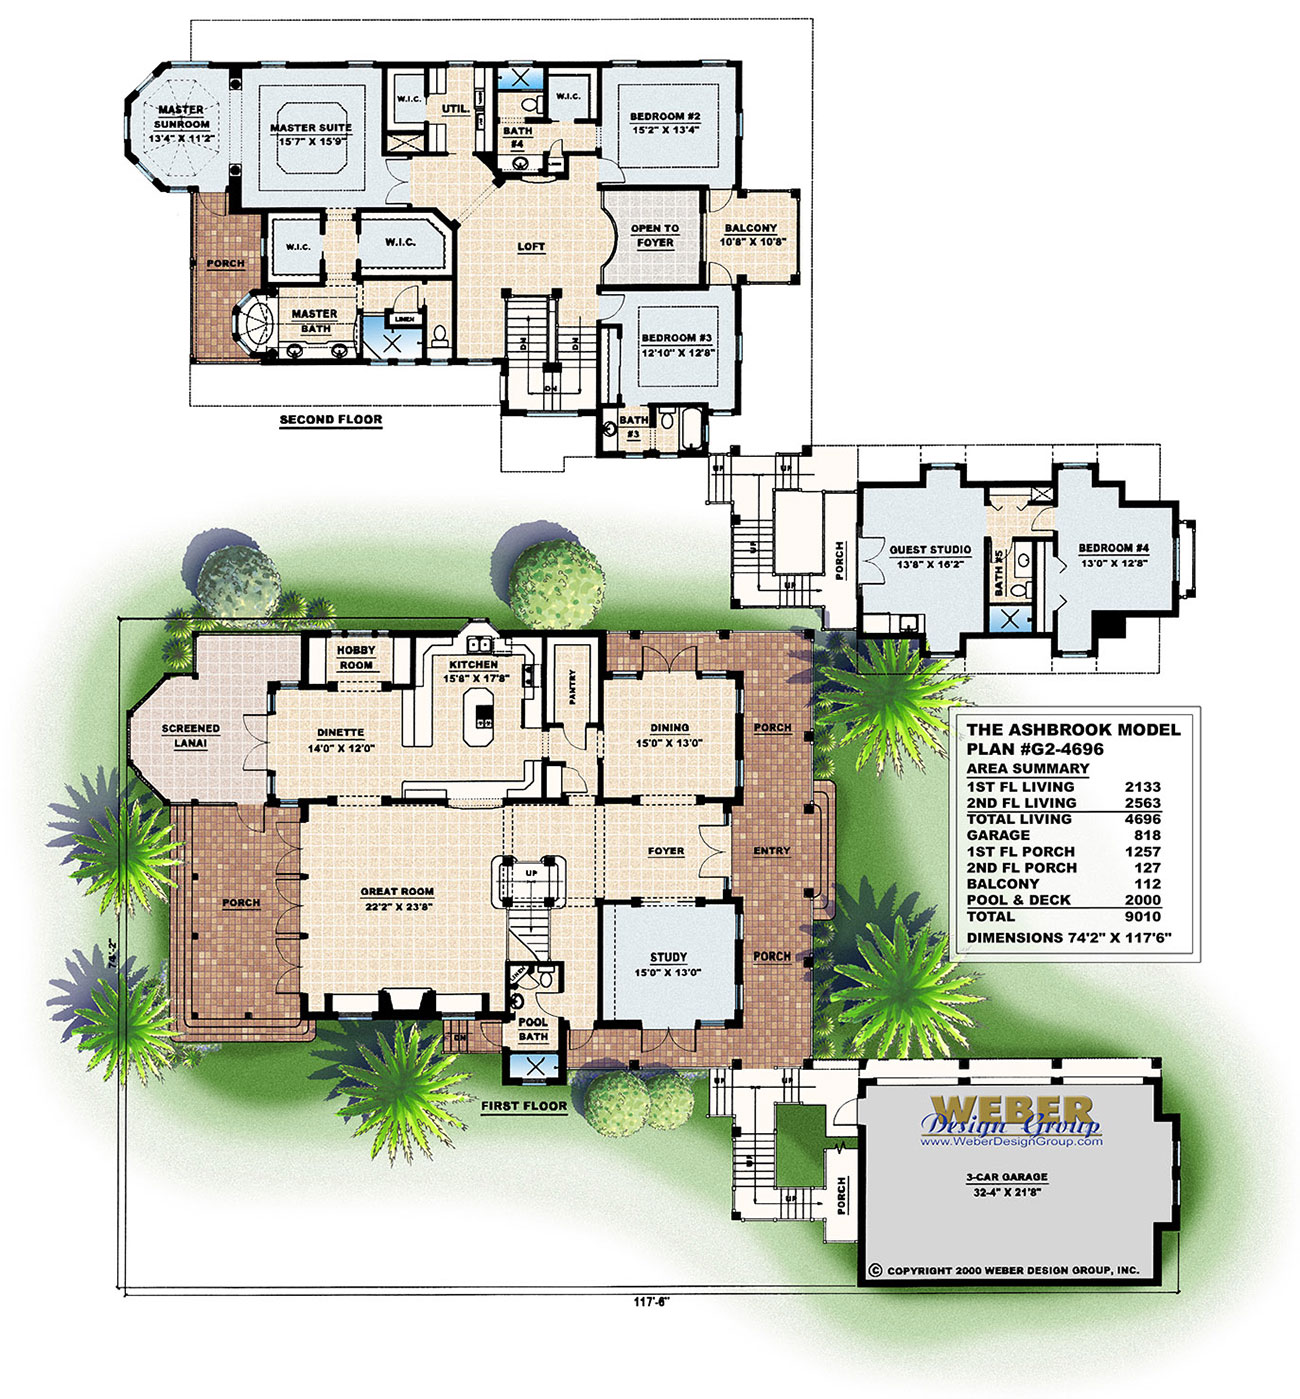 Majorca house plan weber design group for Weber house plans